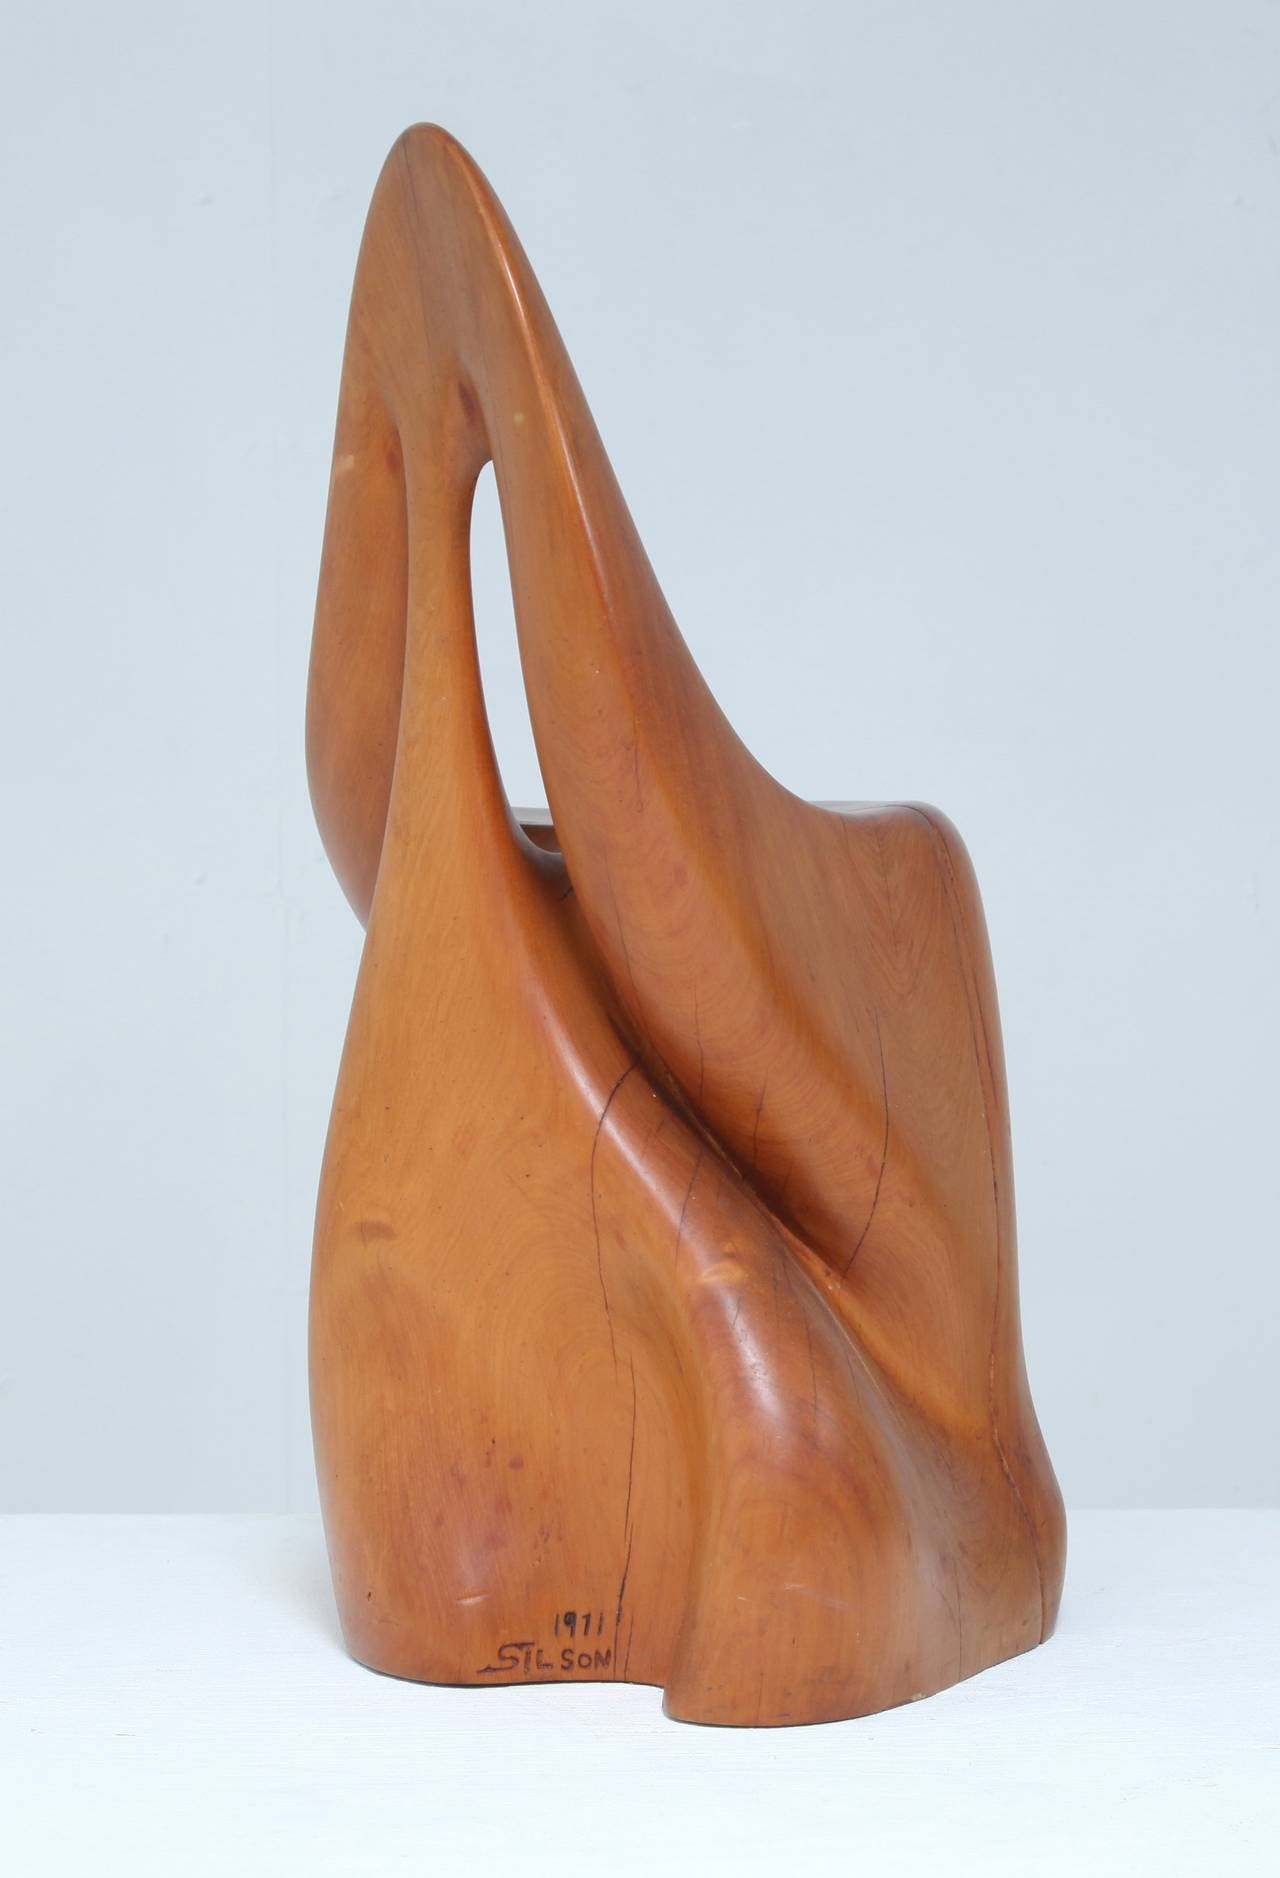 Studio Crafted Sculptural Chair For Sale At 1stdibs